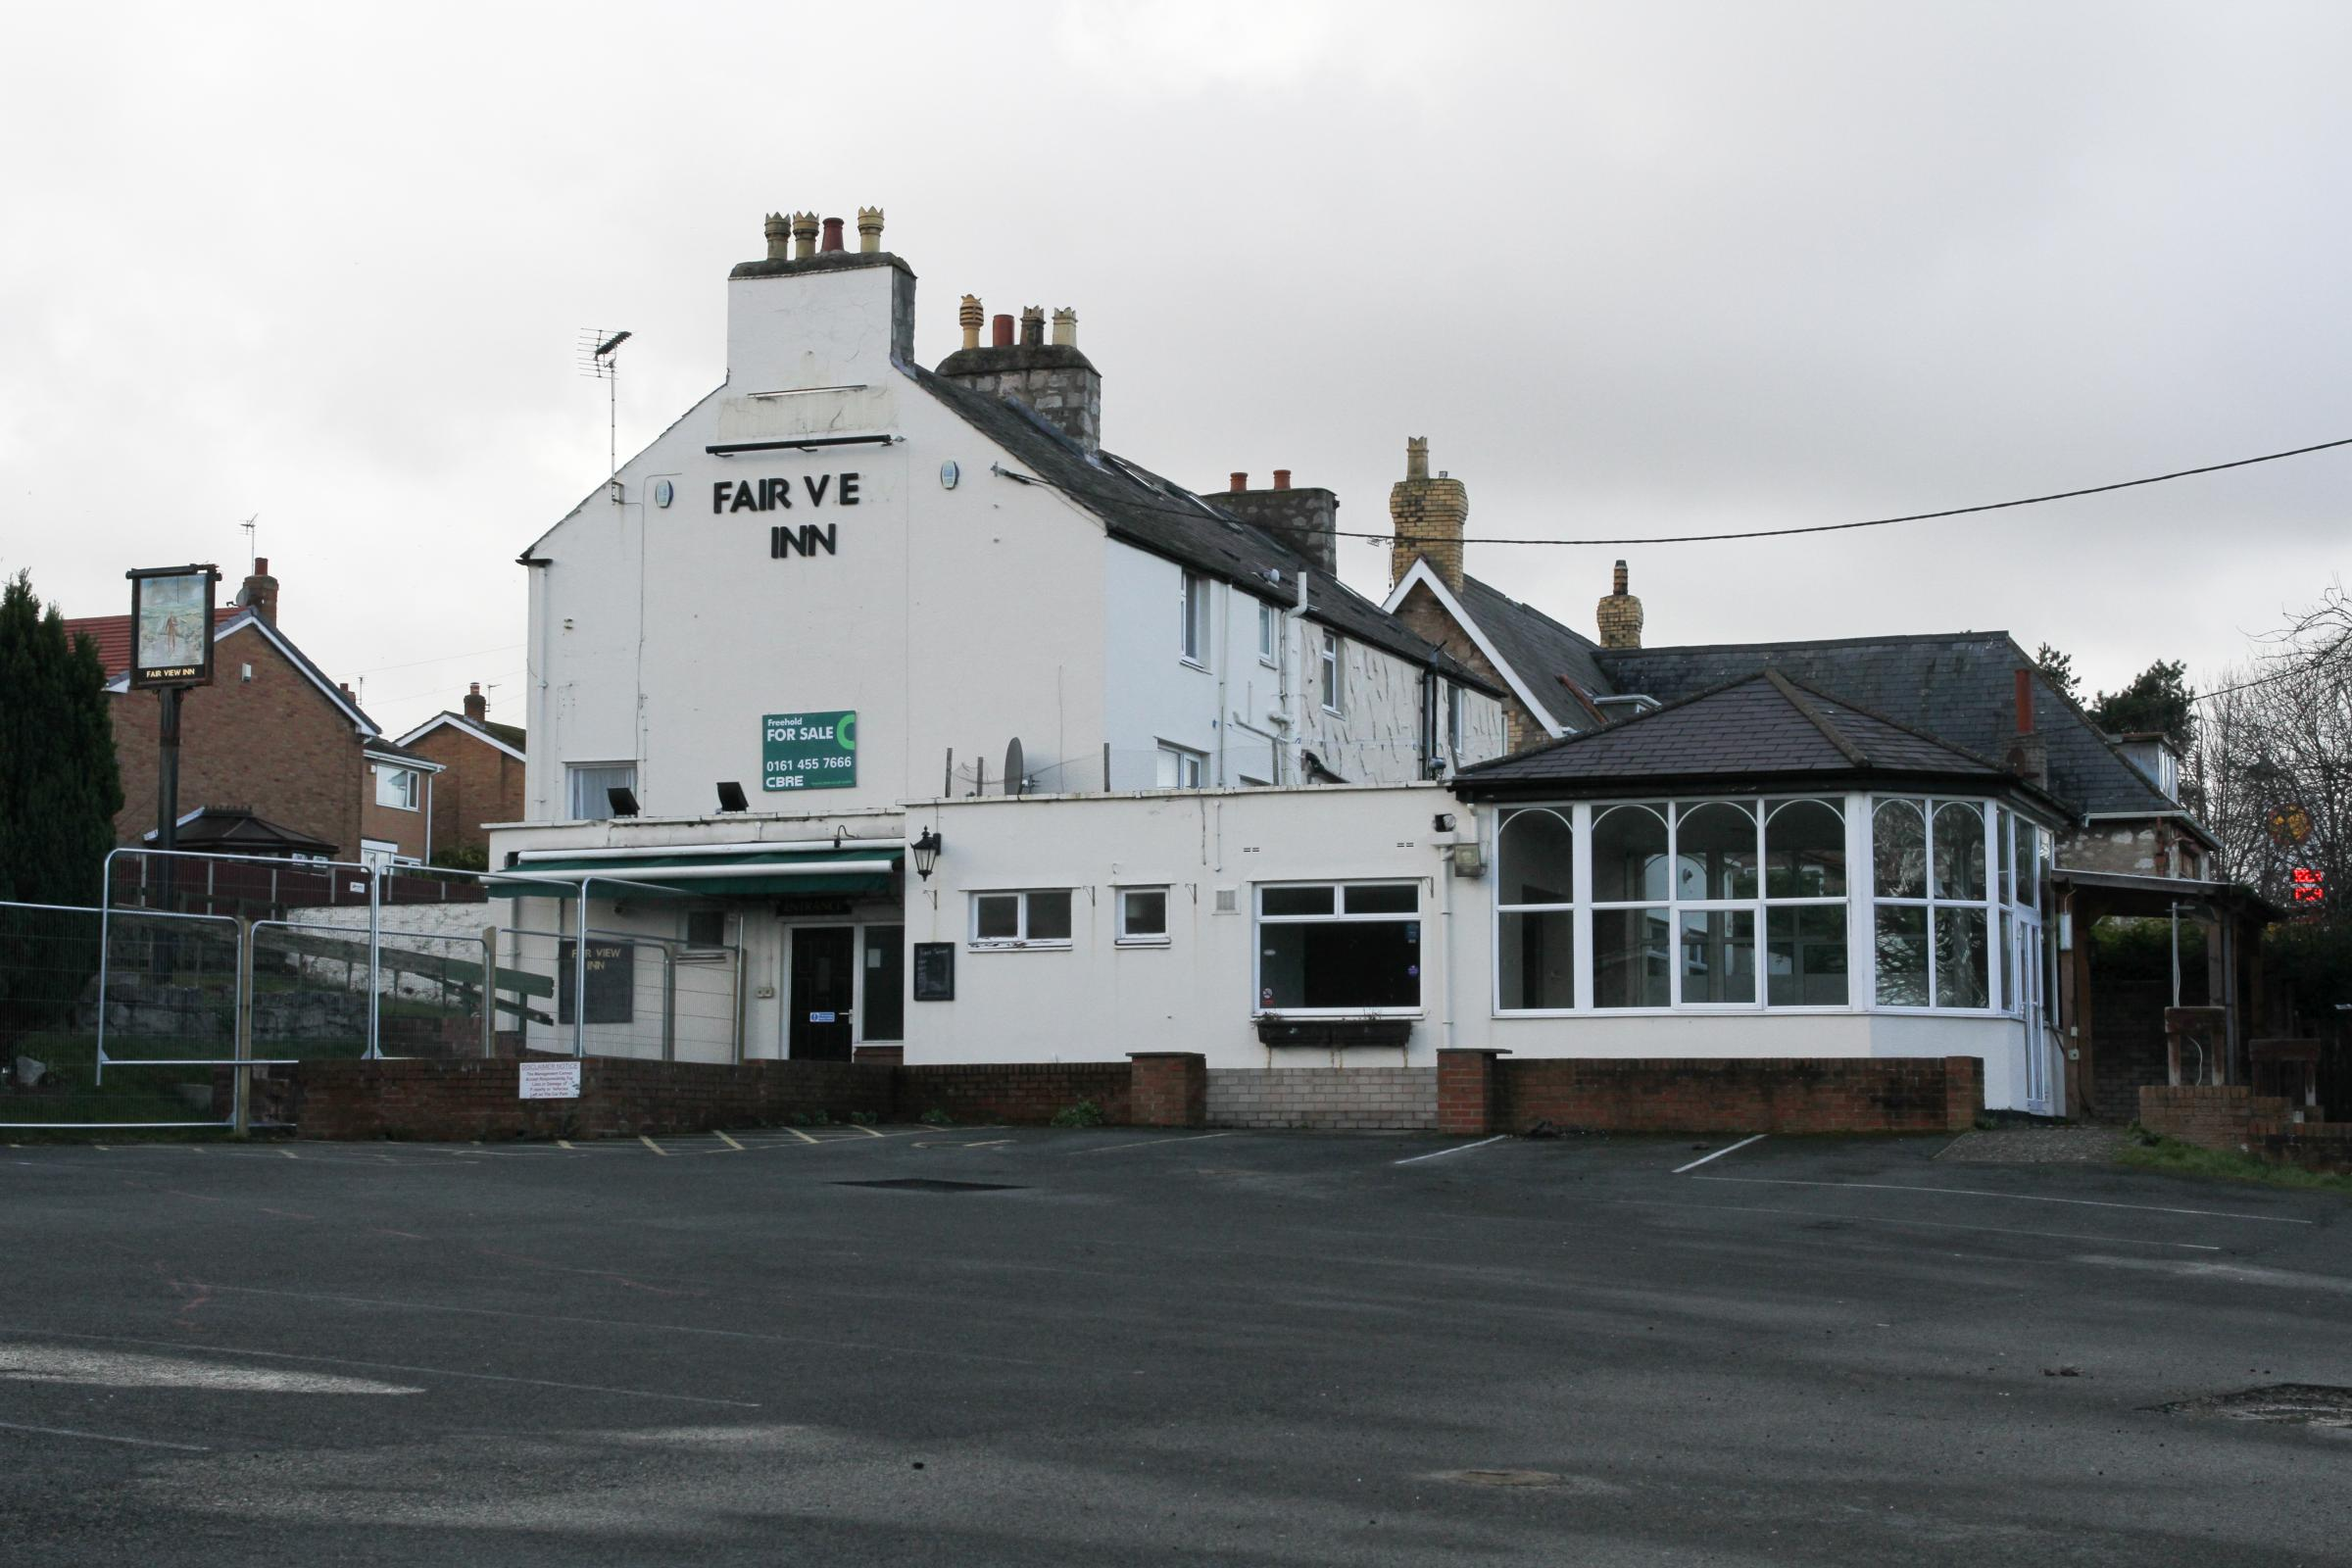 Fairview Inn, Llanddulas. Picture: Kerry Roberts, KR090218c